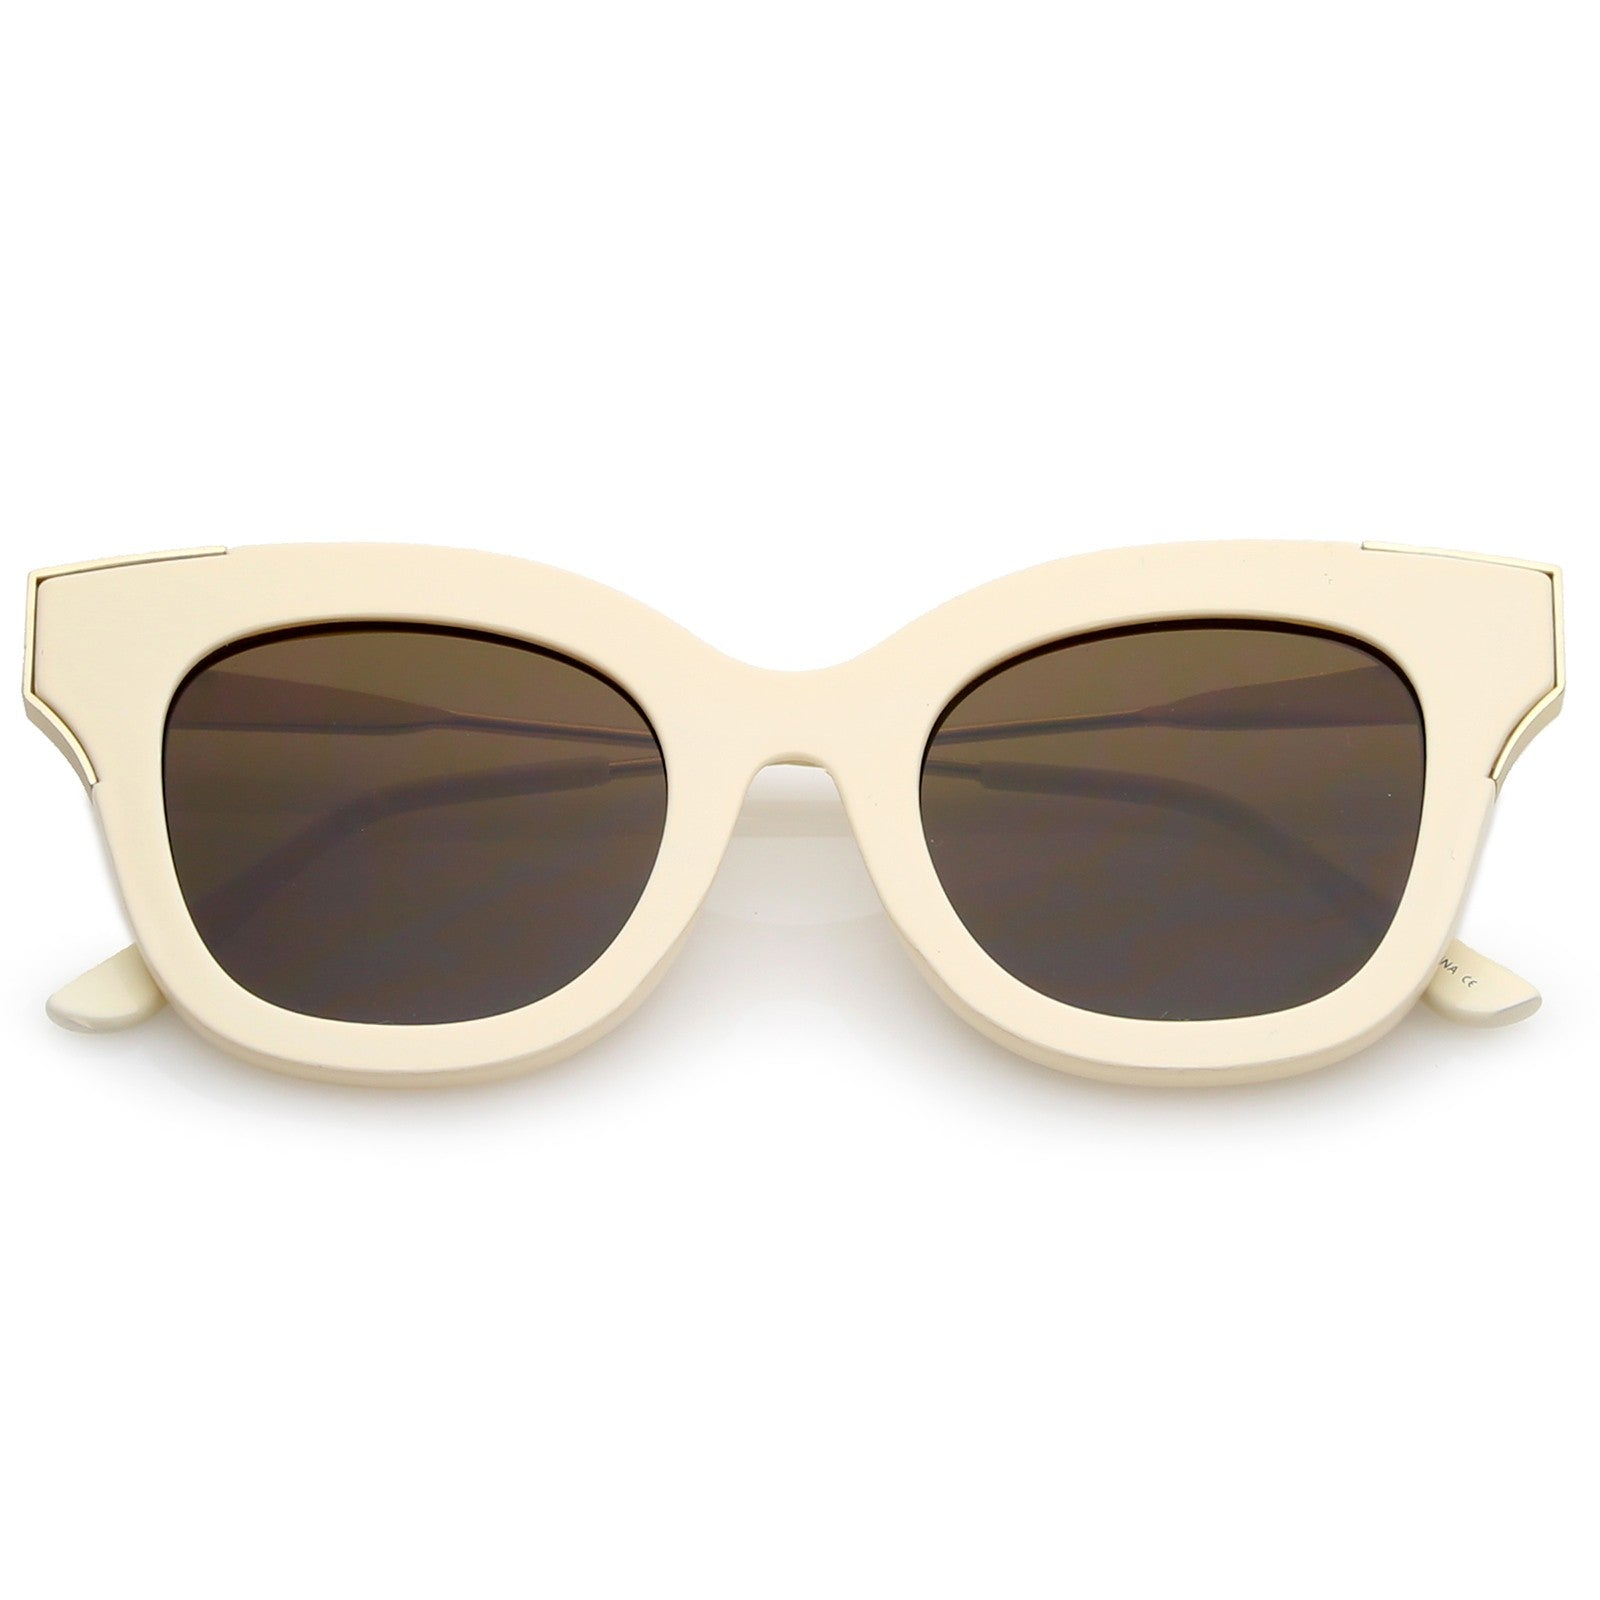 Diva Thick Frame Sunglasses 2019 Collection - SeeThru™